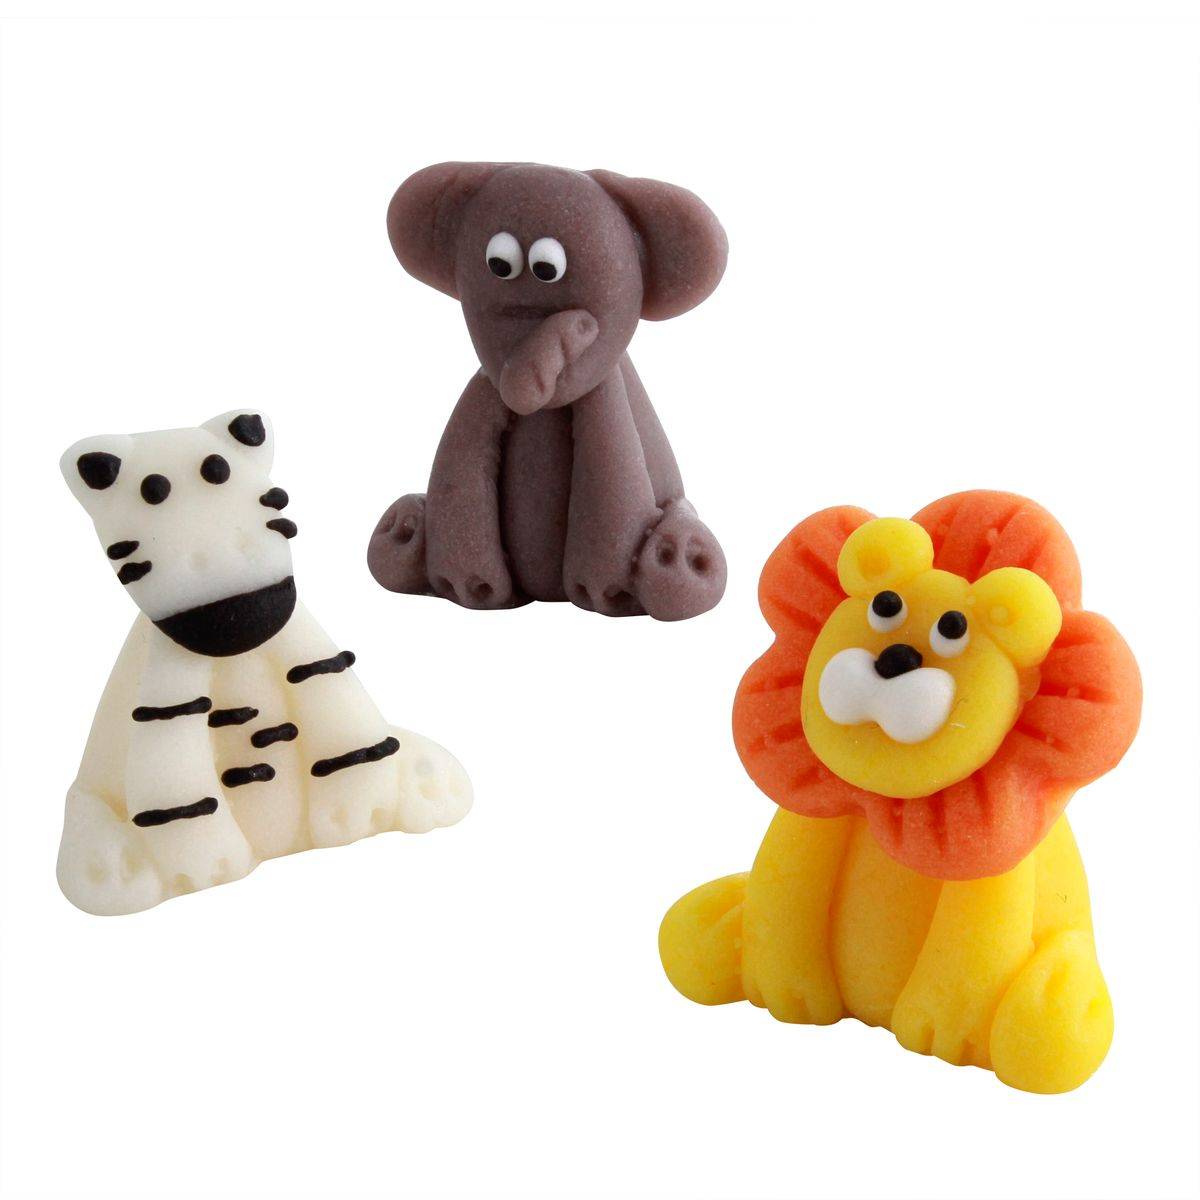 3 figurines 3D animaux